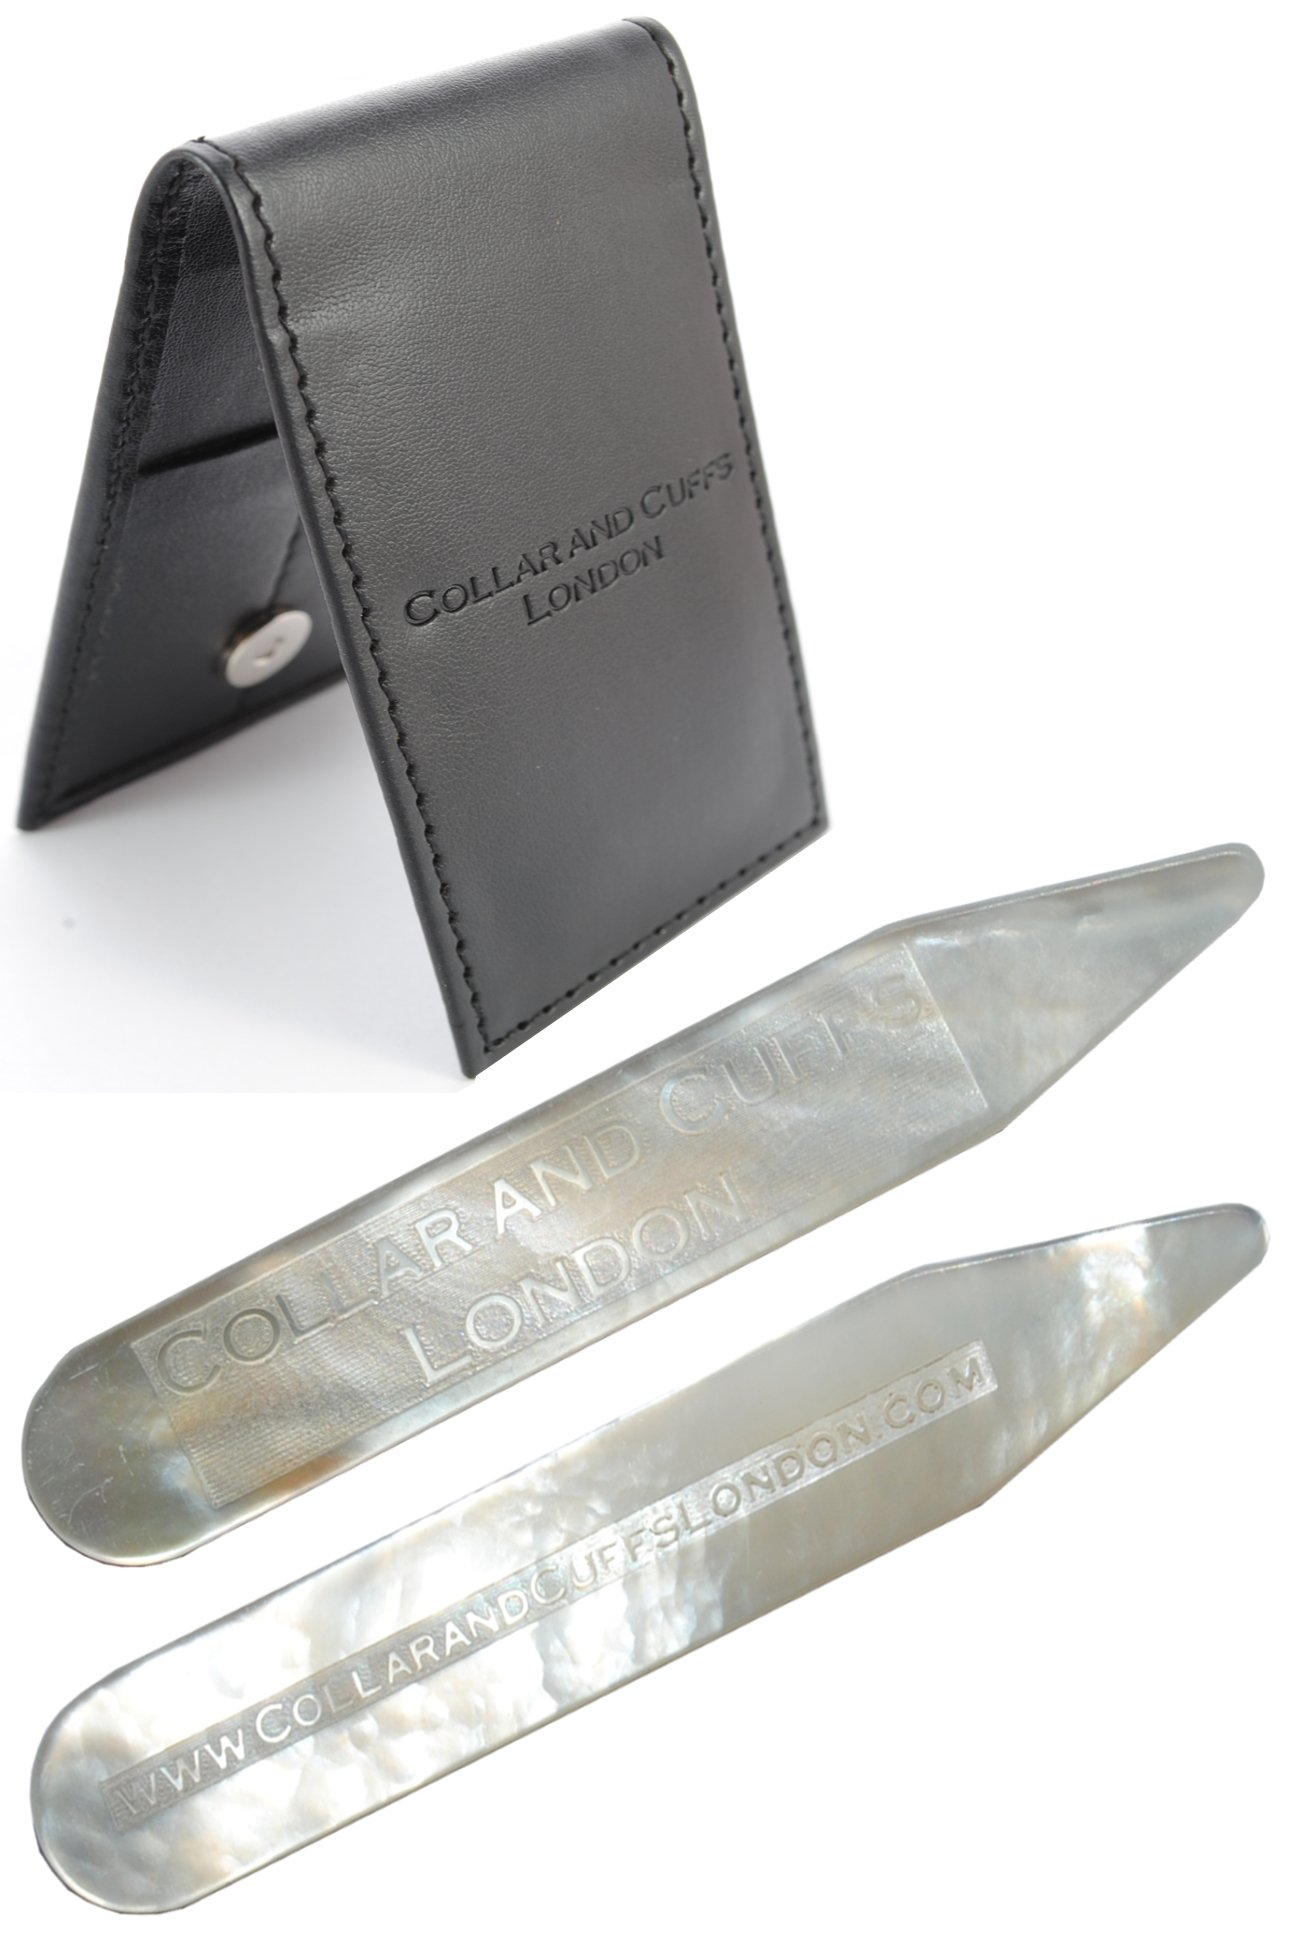 COLLAR AND CUFFS LONDON - MOTHER OF PEARL Collar Stiffeners - With Presentation Gift Wallet - Cultured and Iridescent - White - Shirt Accessories - 63mm - One Pair